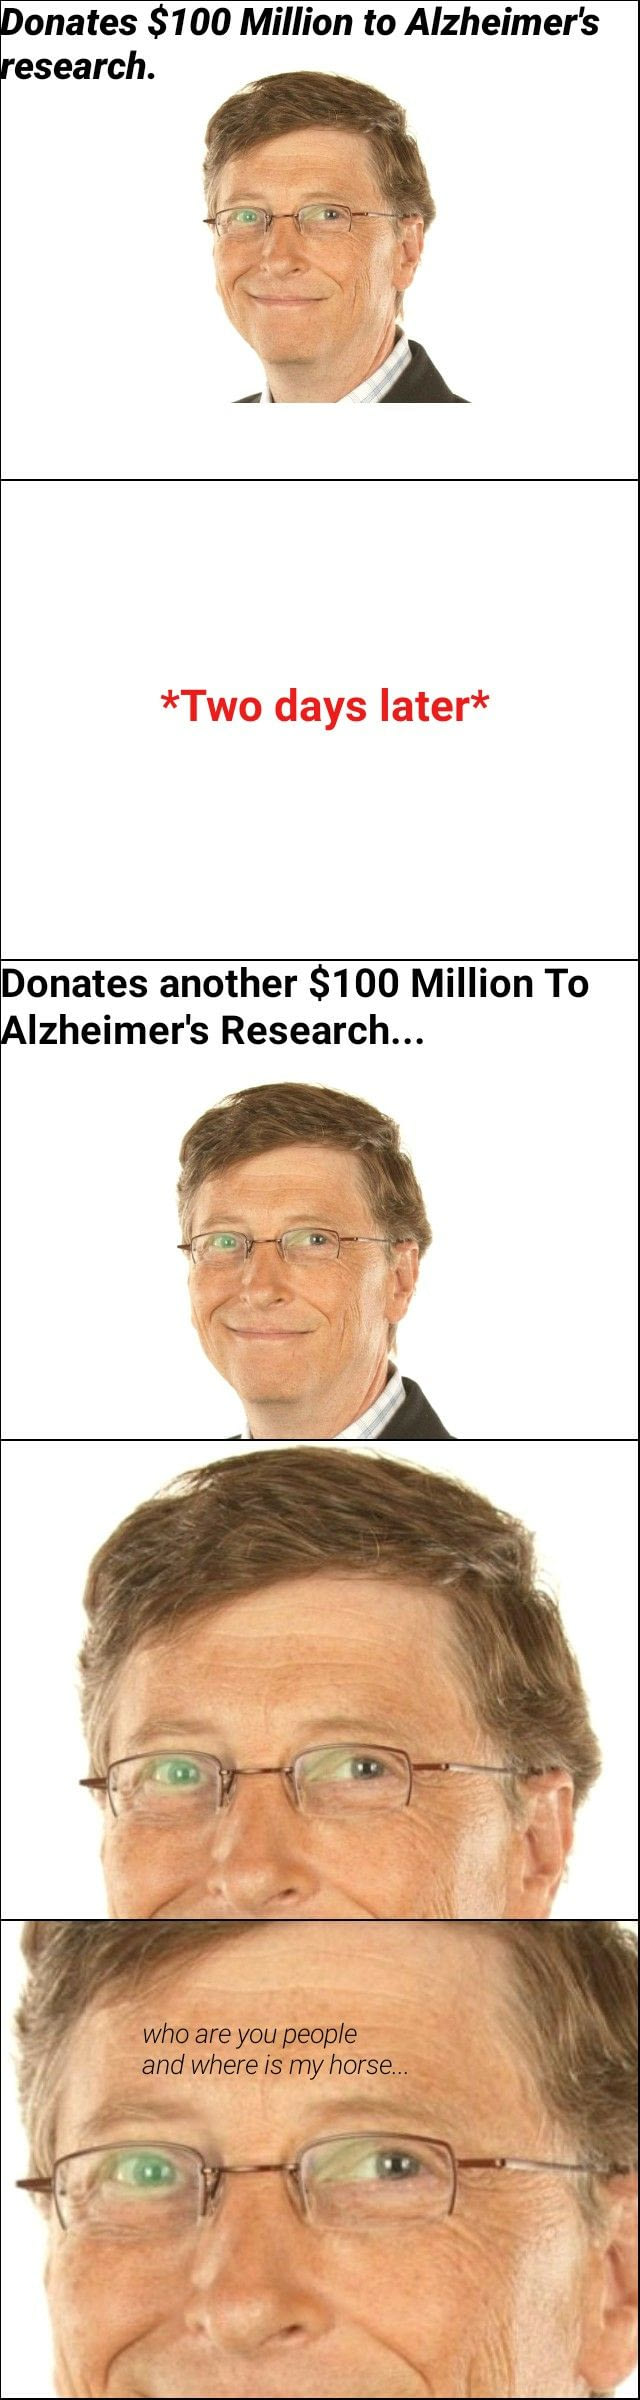 """lustig"" Alzheimer Bill Gates Million Research sfw"